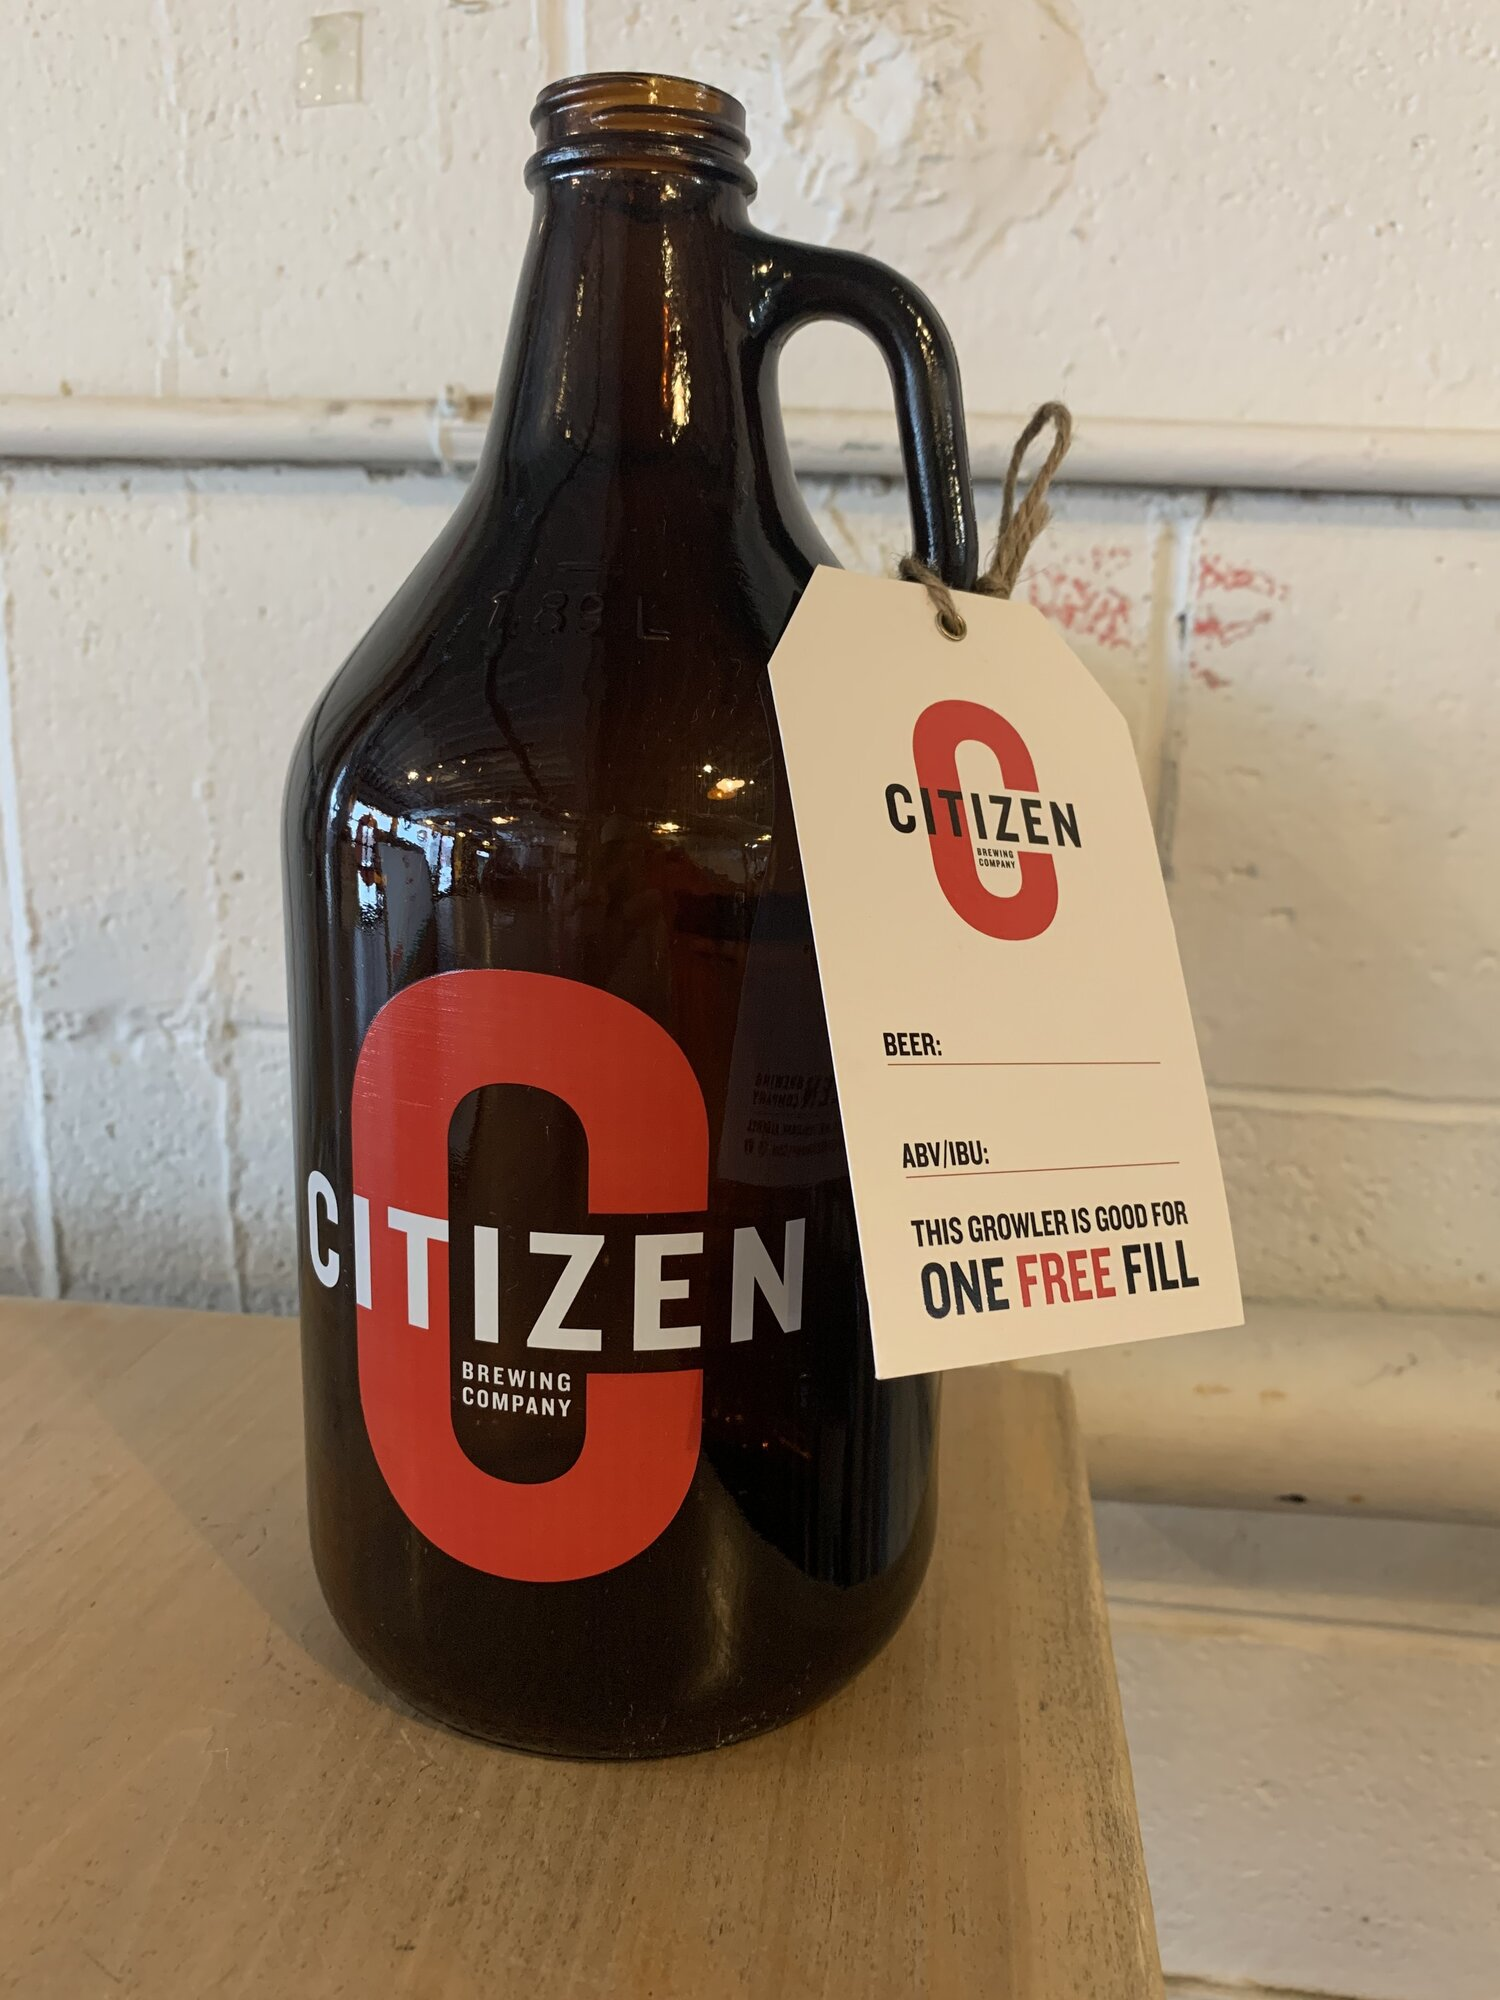 64 oz Growler + One Free Fill tag  Citizen Brewing Company   Northeast Calgary Brewery